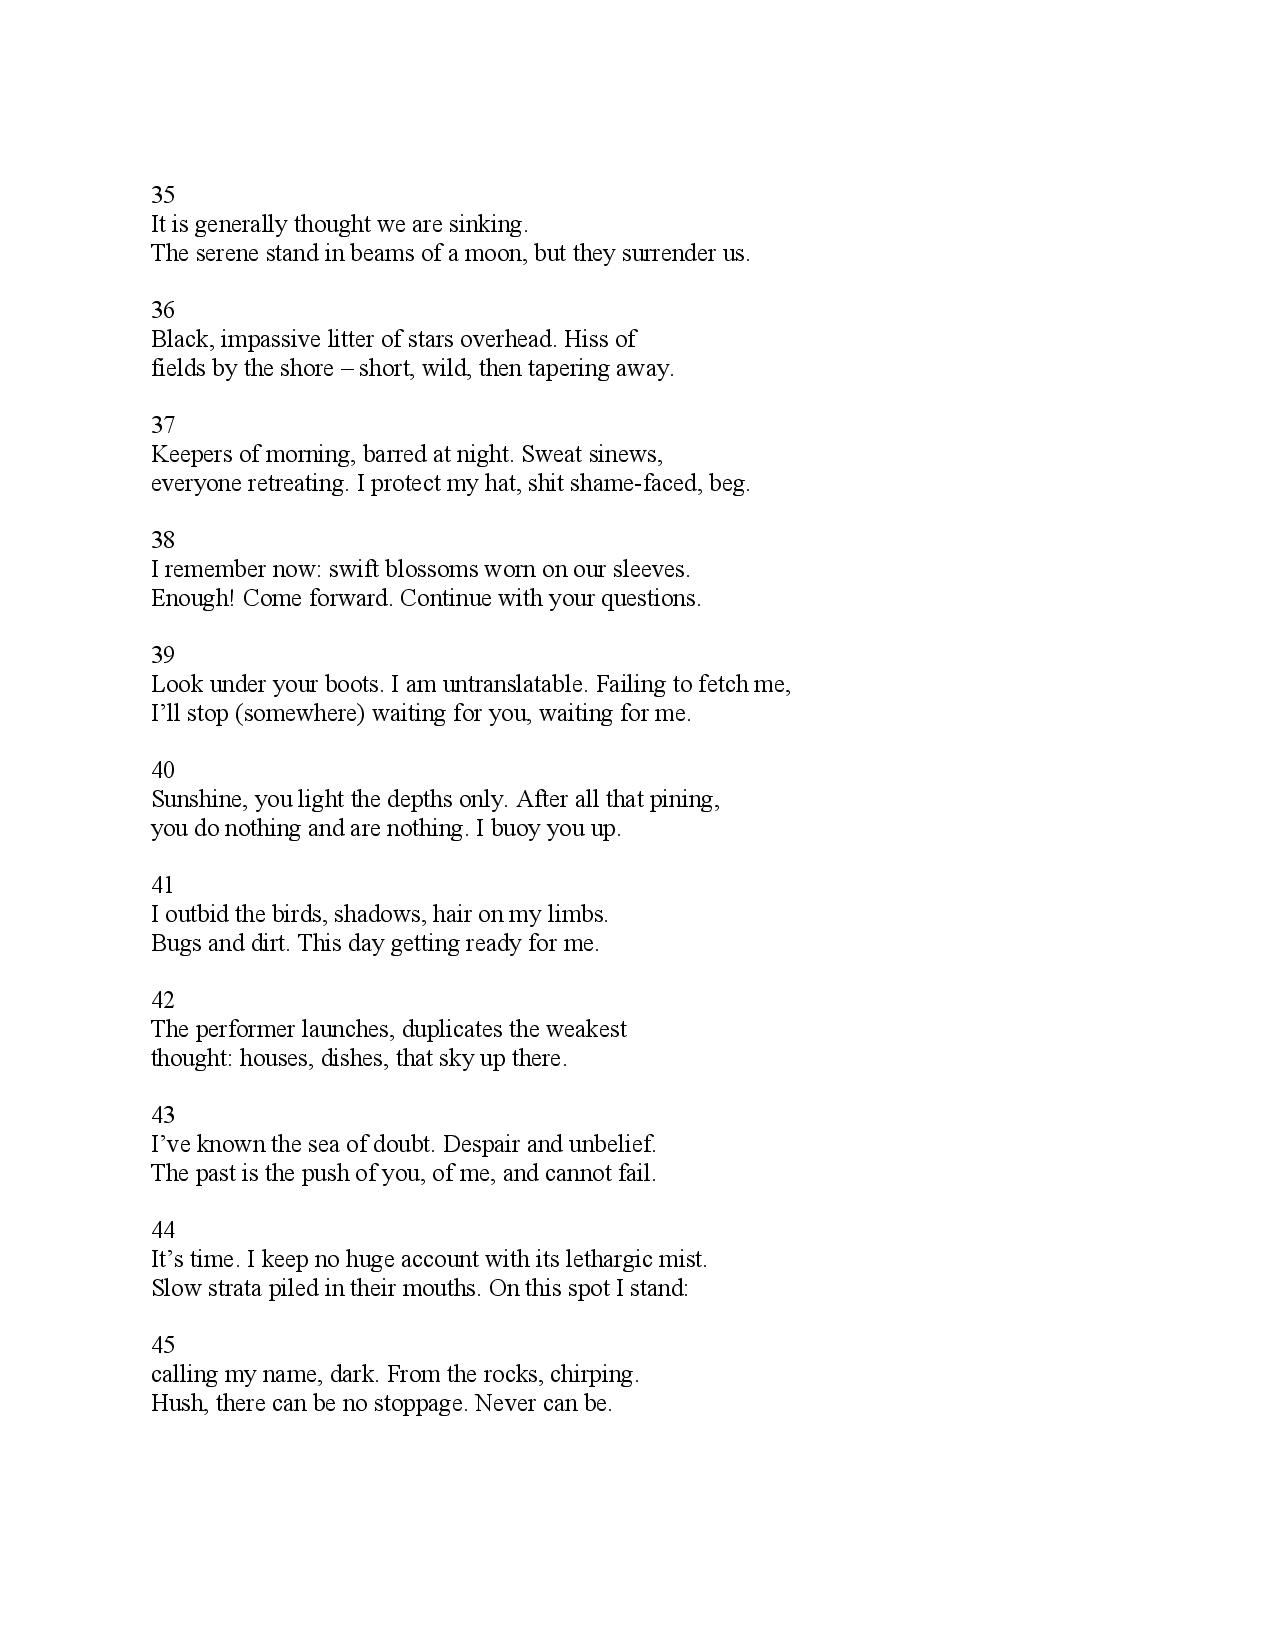 Song-page-004